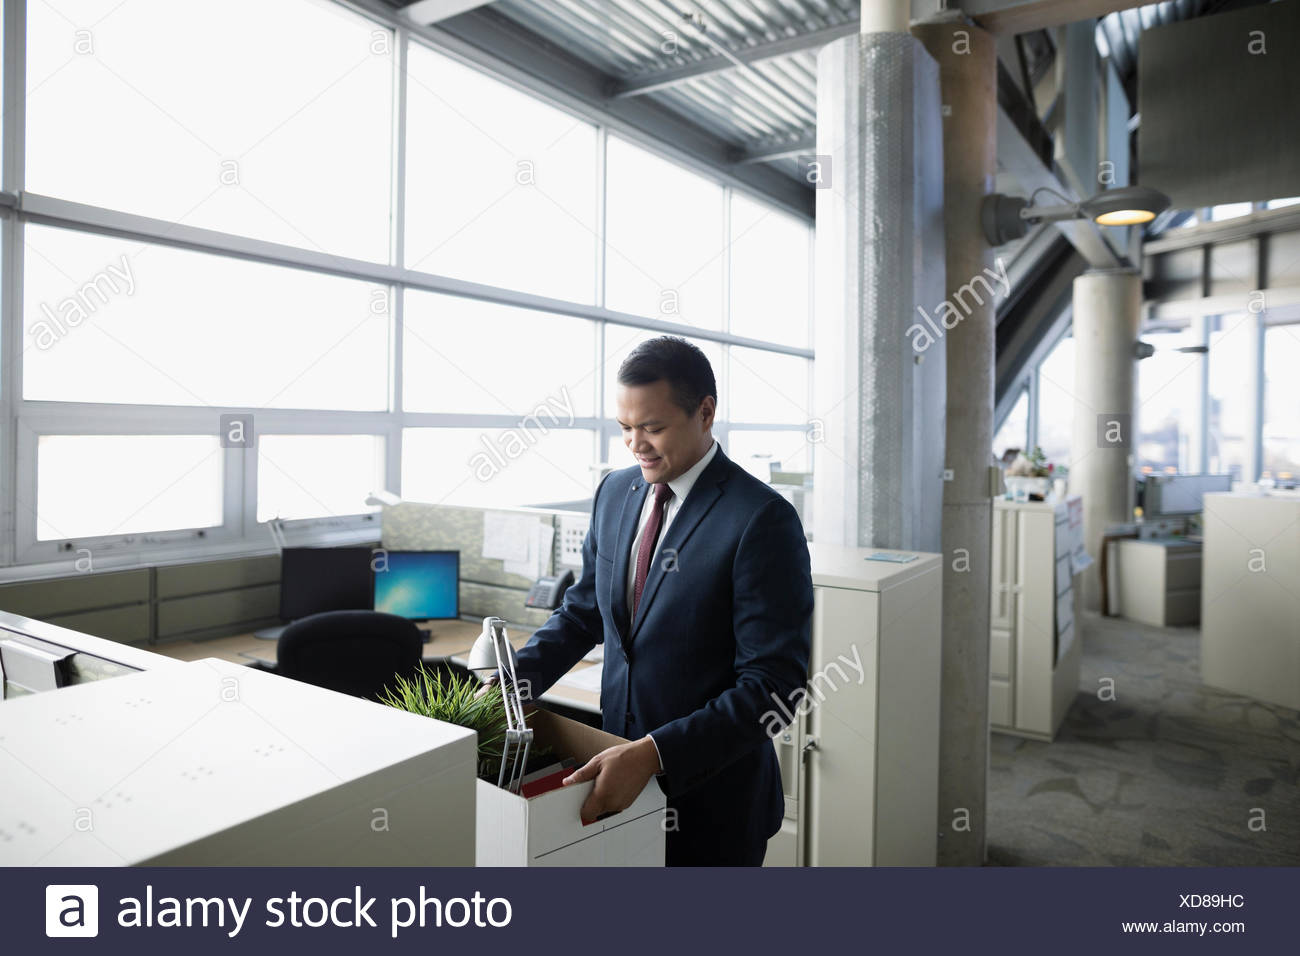 Businessman being laid off,holding box of belongings at office cubicle - Stock Image